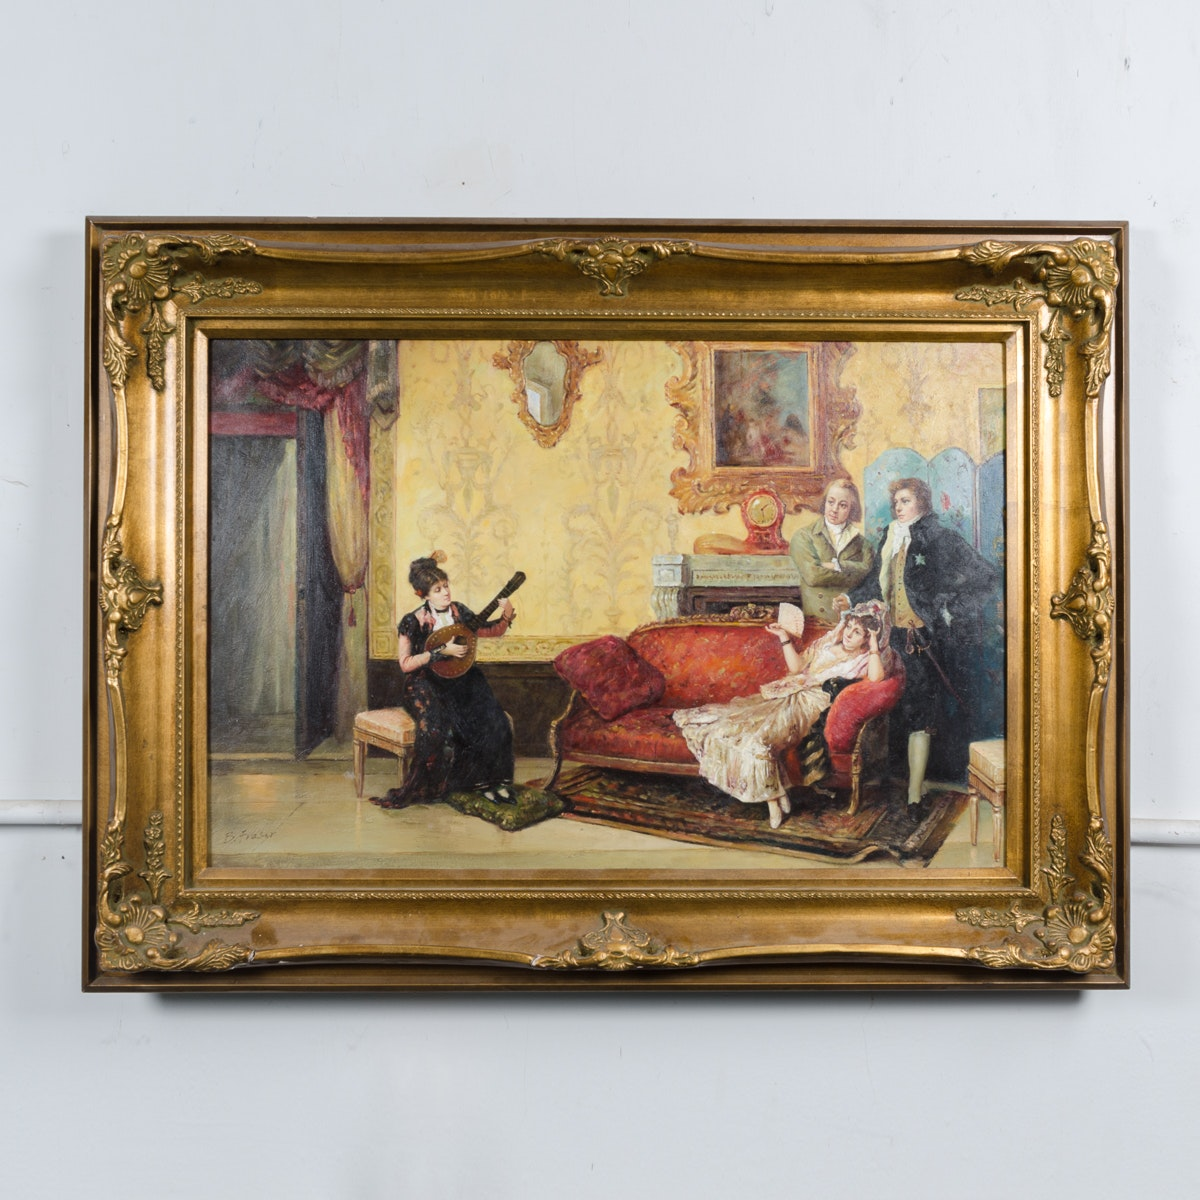 """B. Fraser Copy Painting after Vicente Palmaroli's """"The Concert"""""""